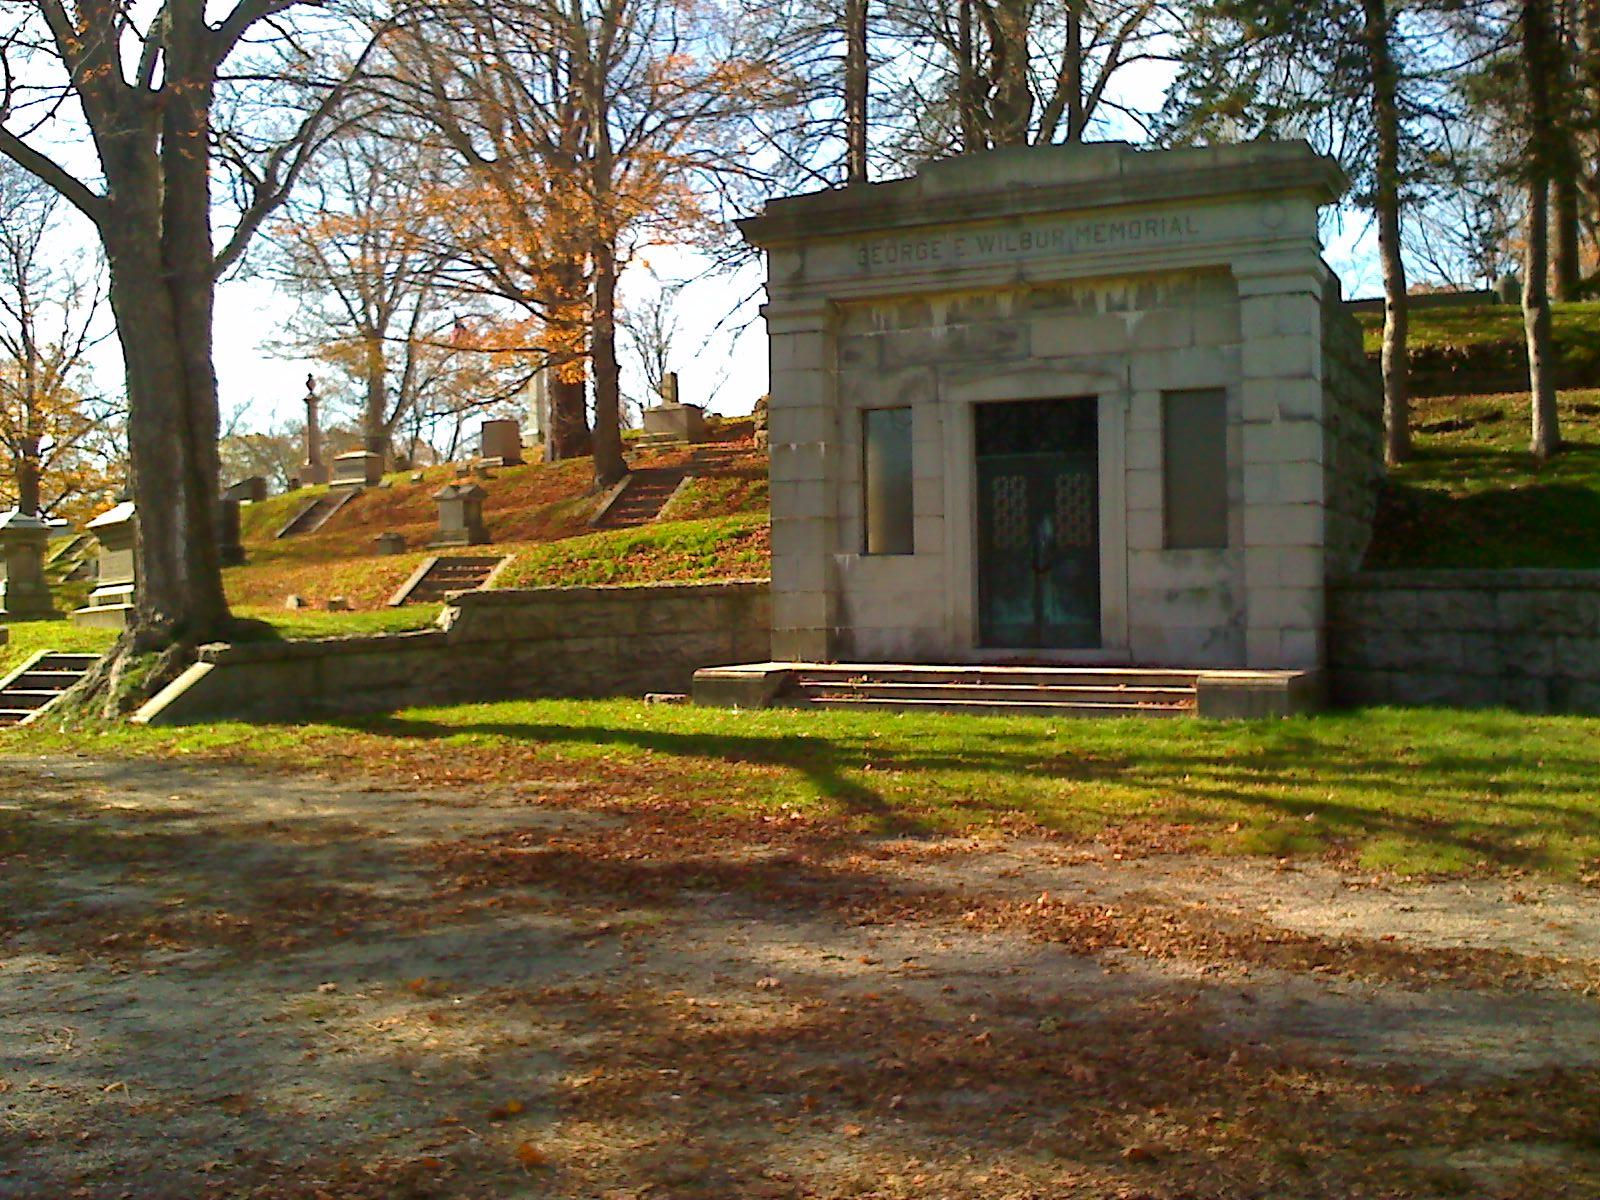 George E. Wilbur Memorial at the Mount Pleasant Cemetery (Courtesy of the Taunton Daily Gazette)